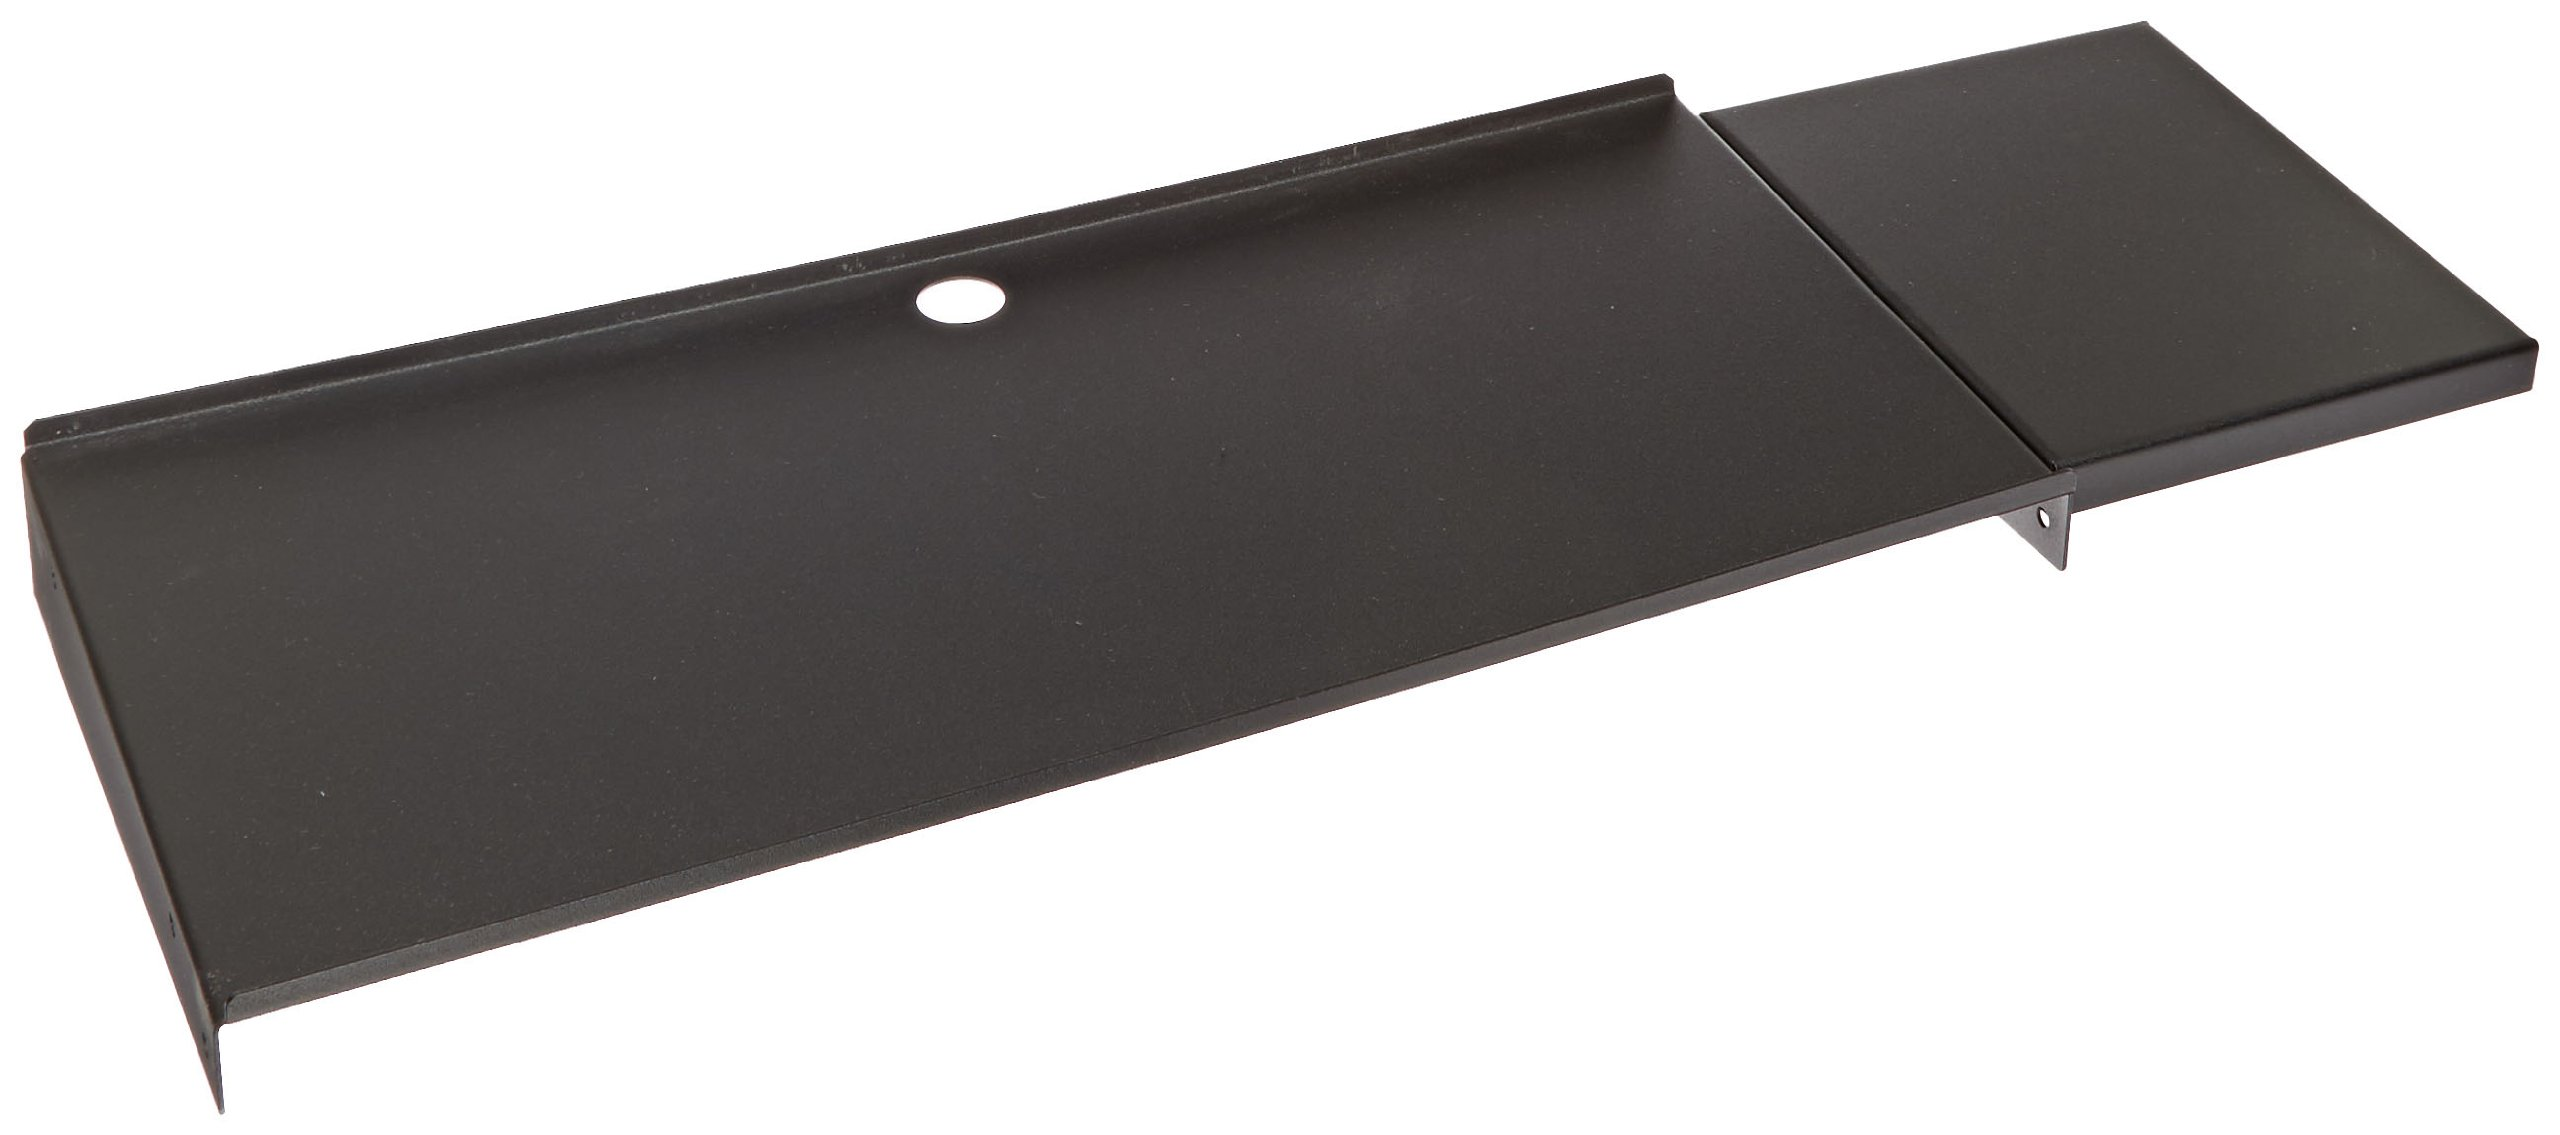 BUD Industries SA-1775-BT Steel Stationary Keyboard and Mouse Shelf, 10'' Length x 27-1/8'' Width x 1-7/8'' Height, Black Texture Finish